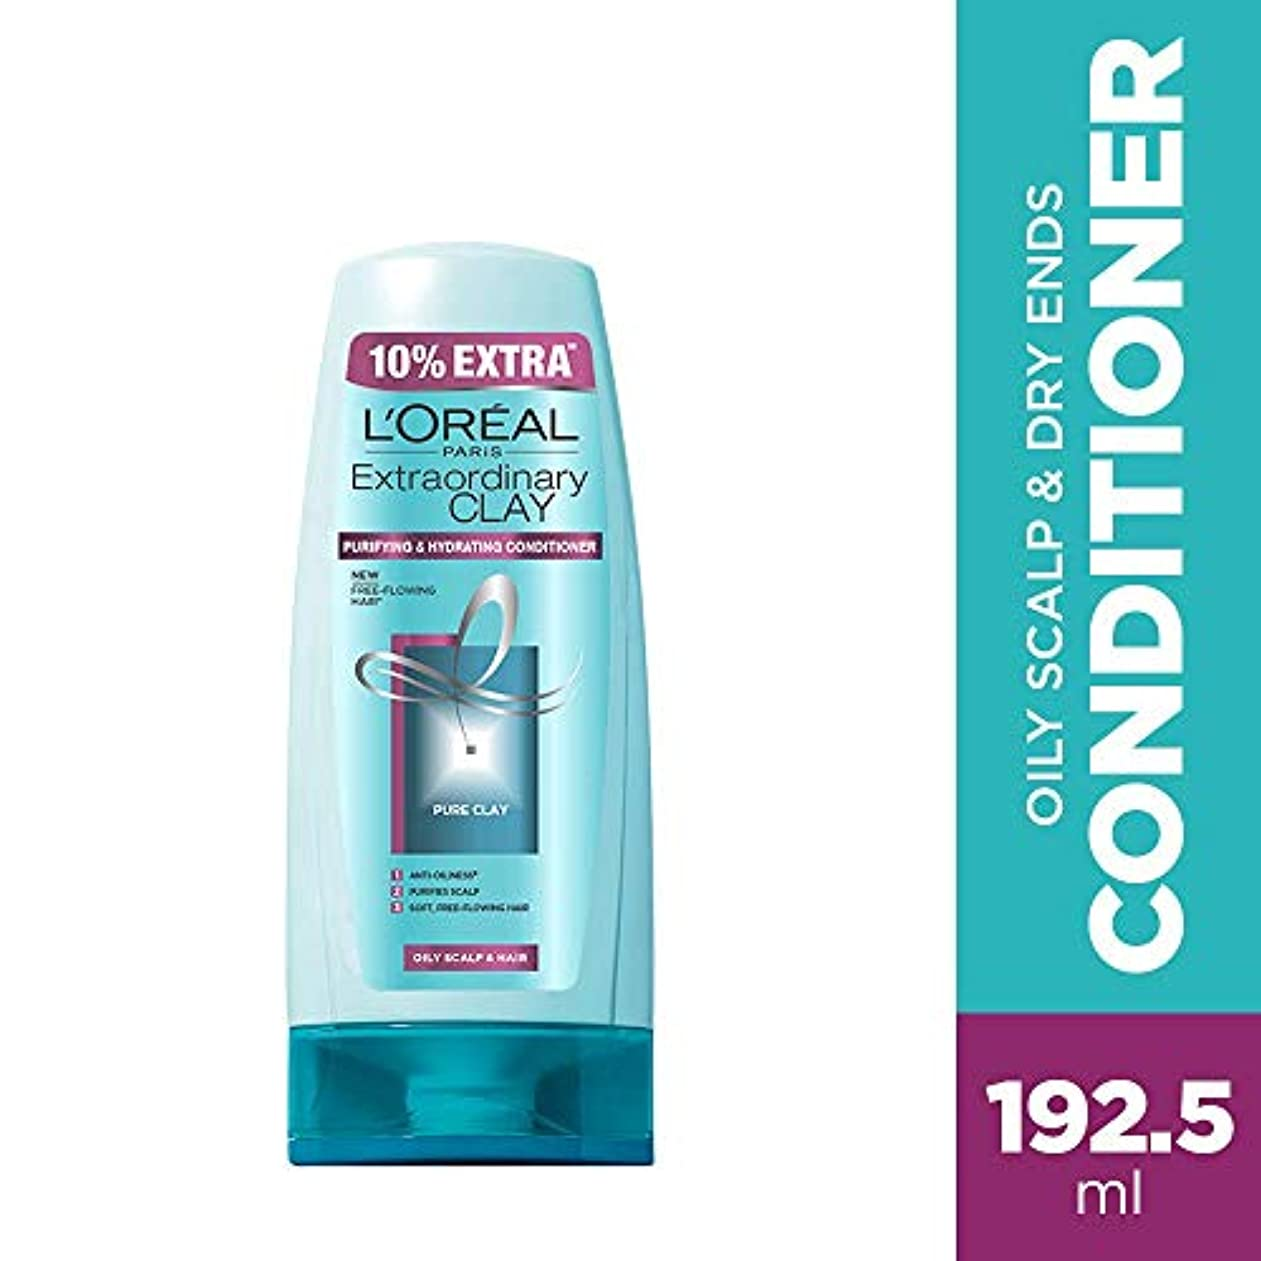 同化カフェ自己尊重L'Oreal Paris Extraordinary Clay Conditioner, 175ml (With 10% Extra) (Loreal Ship From India)